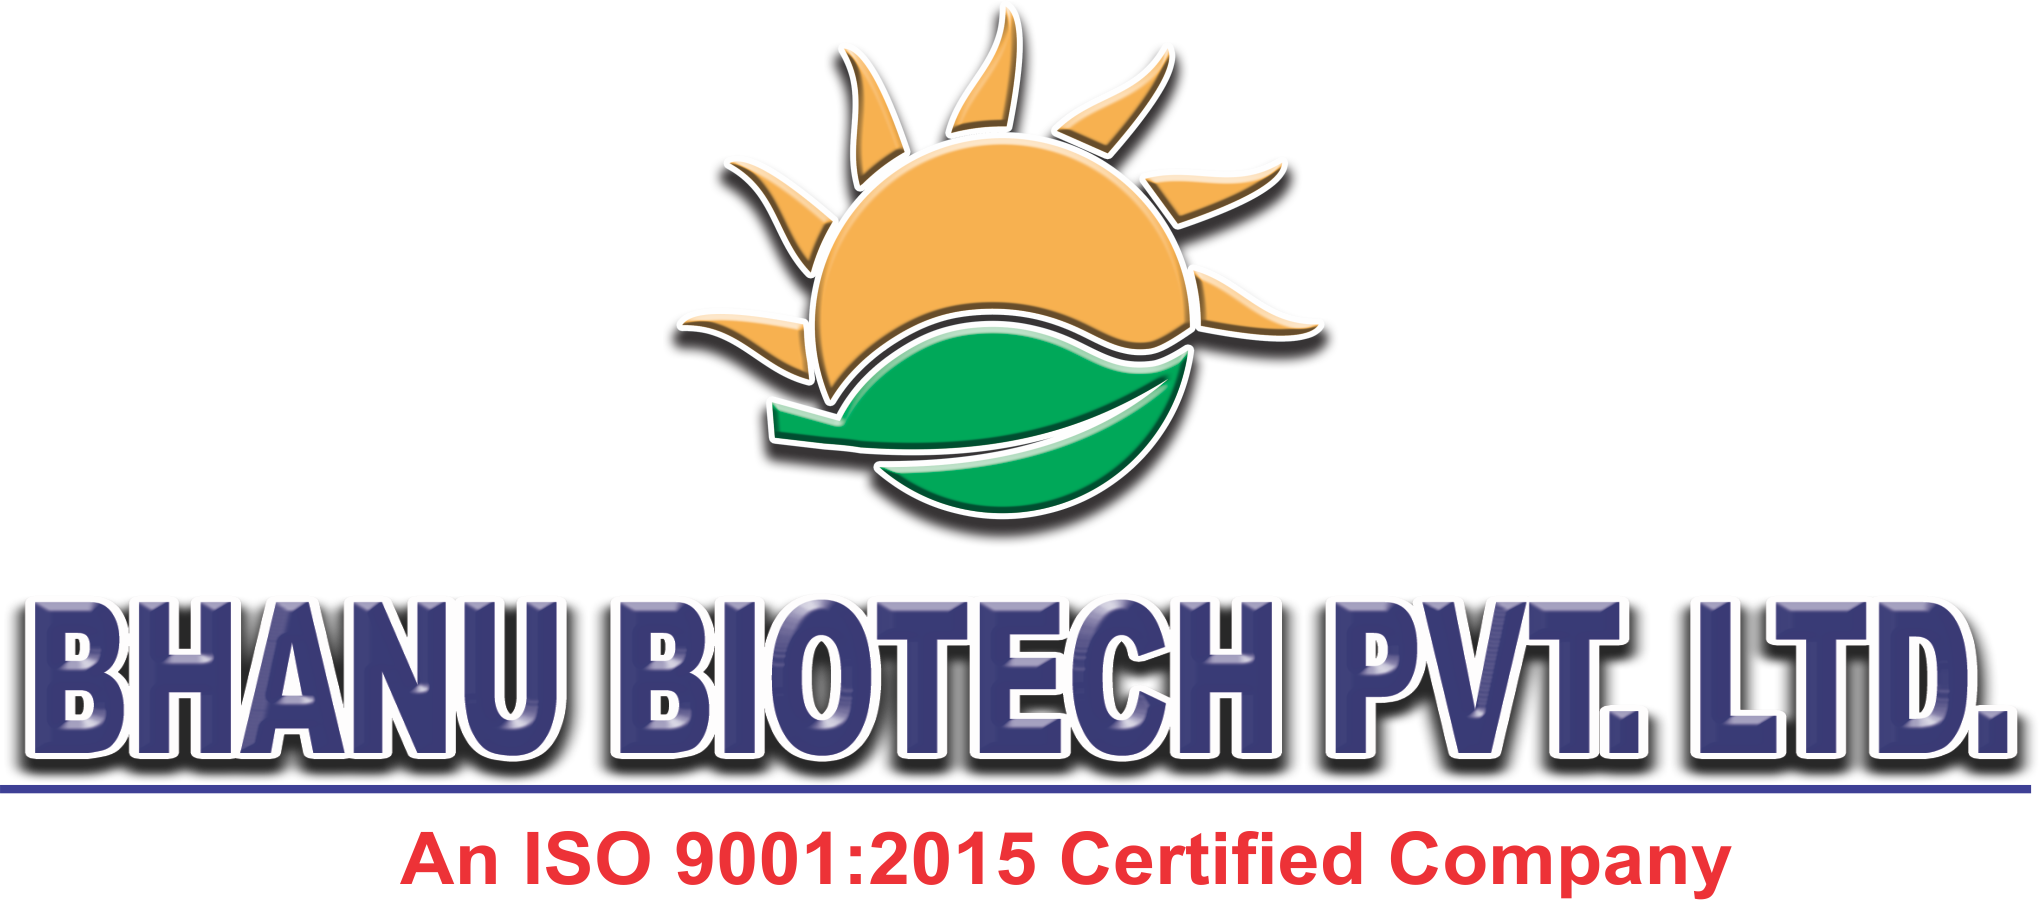 titan biotech pvt ltd